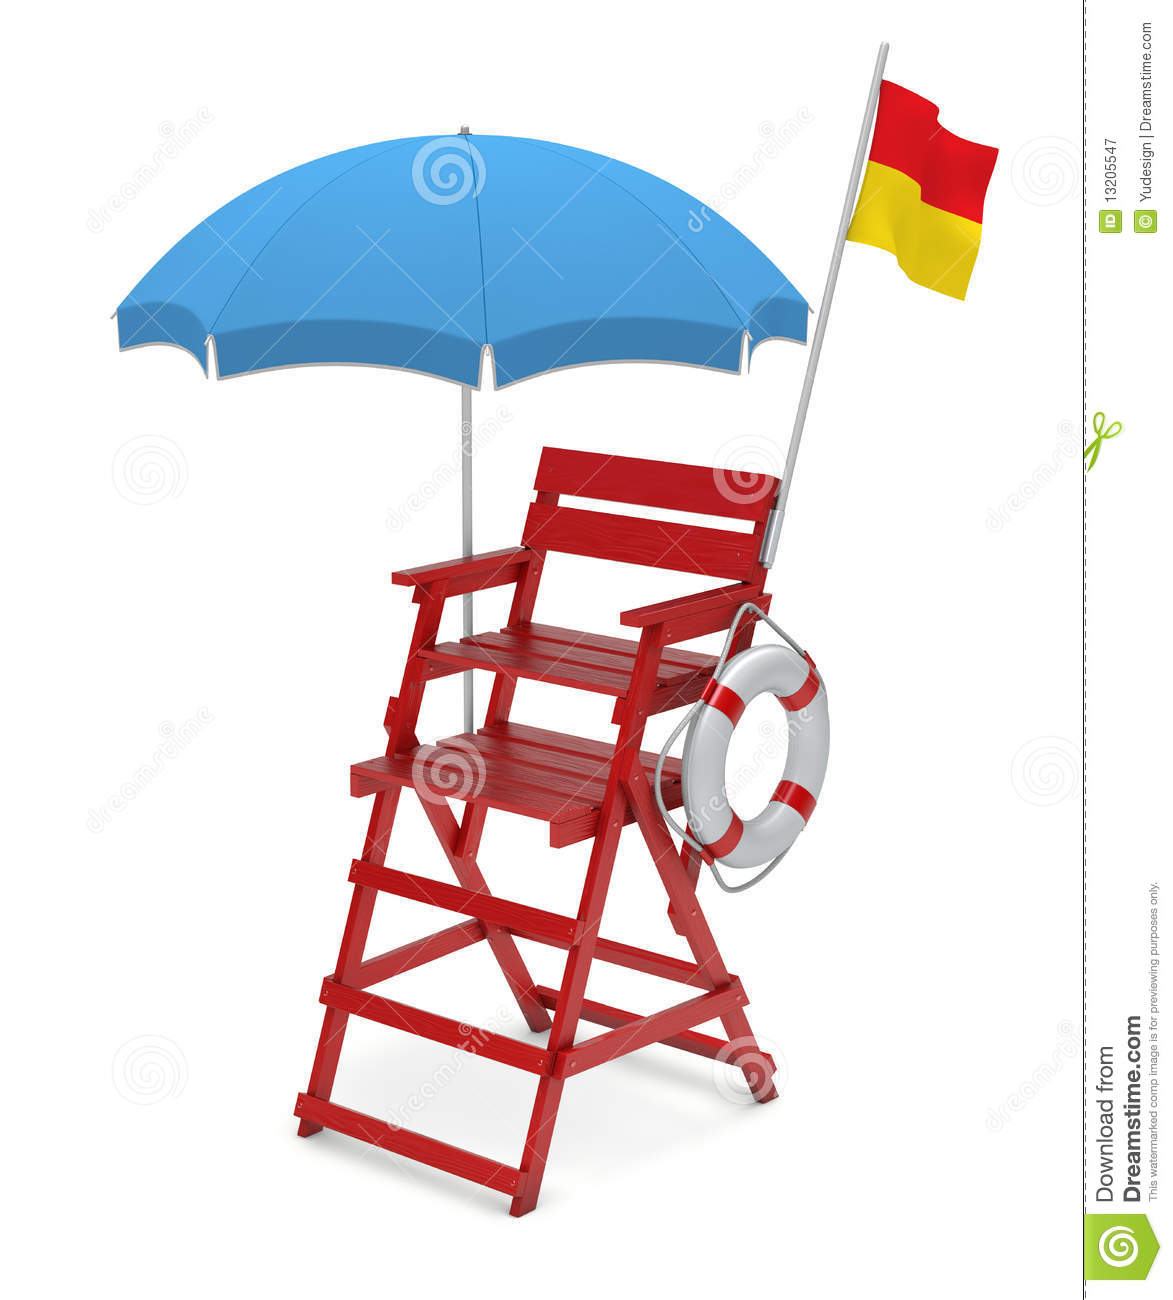 Lifeguard Chair Royalty Free Stock Photography Image